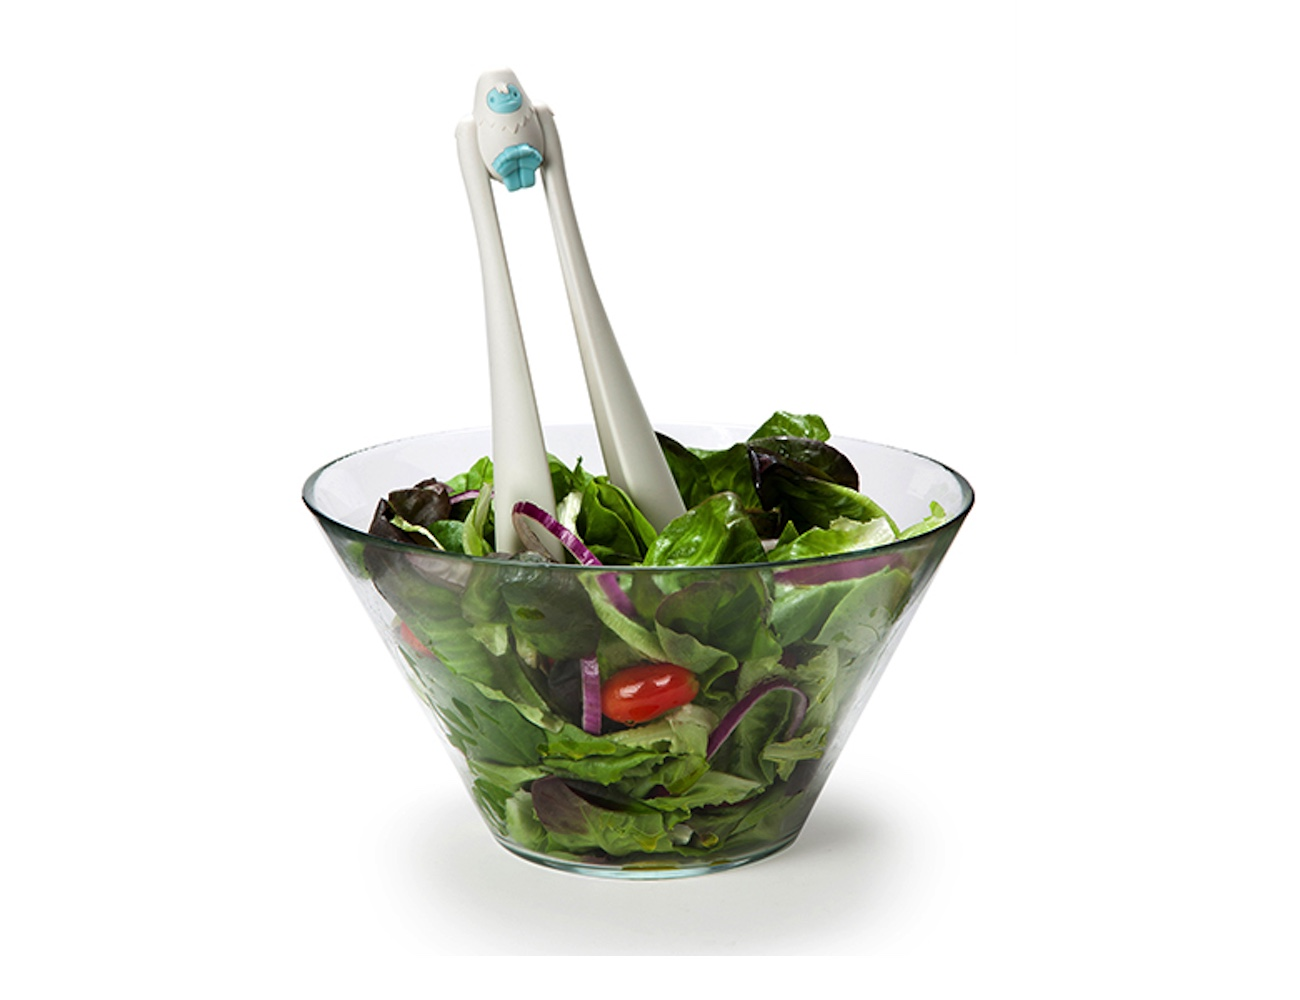 OTOTO Bigfoot Salad Serving Tongs